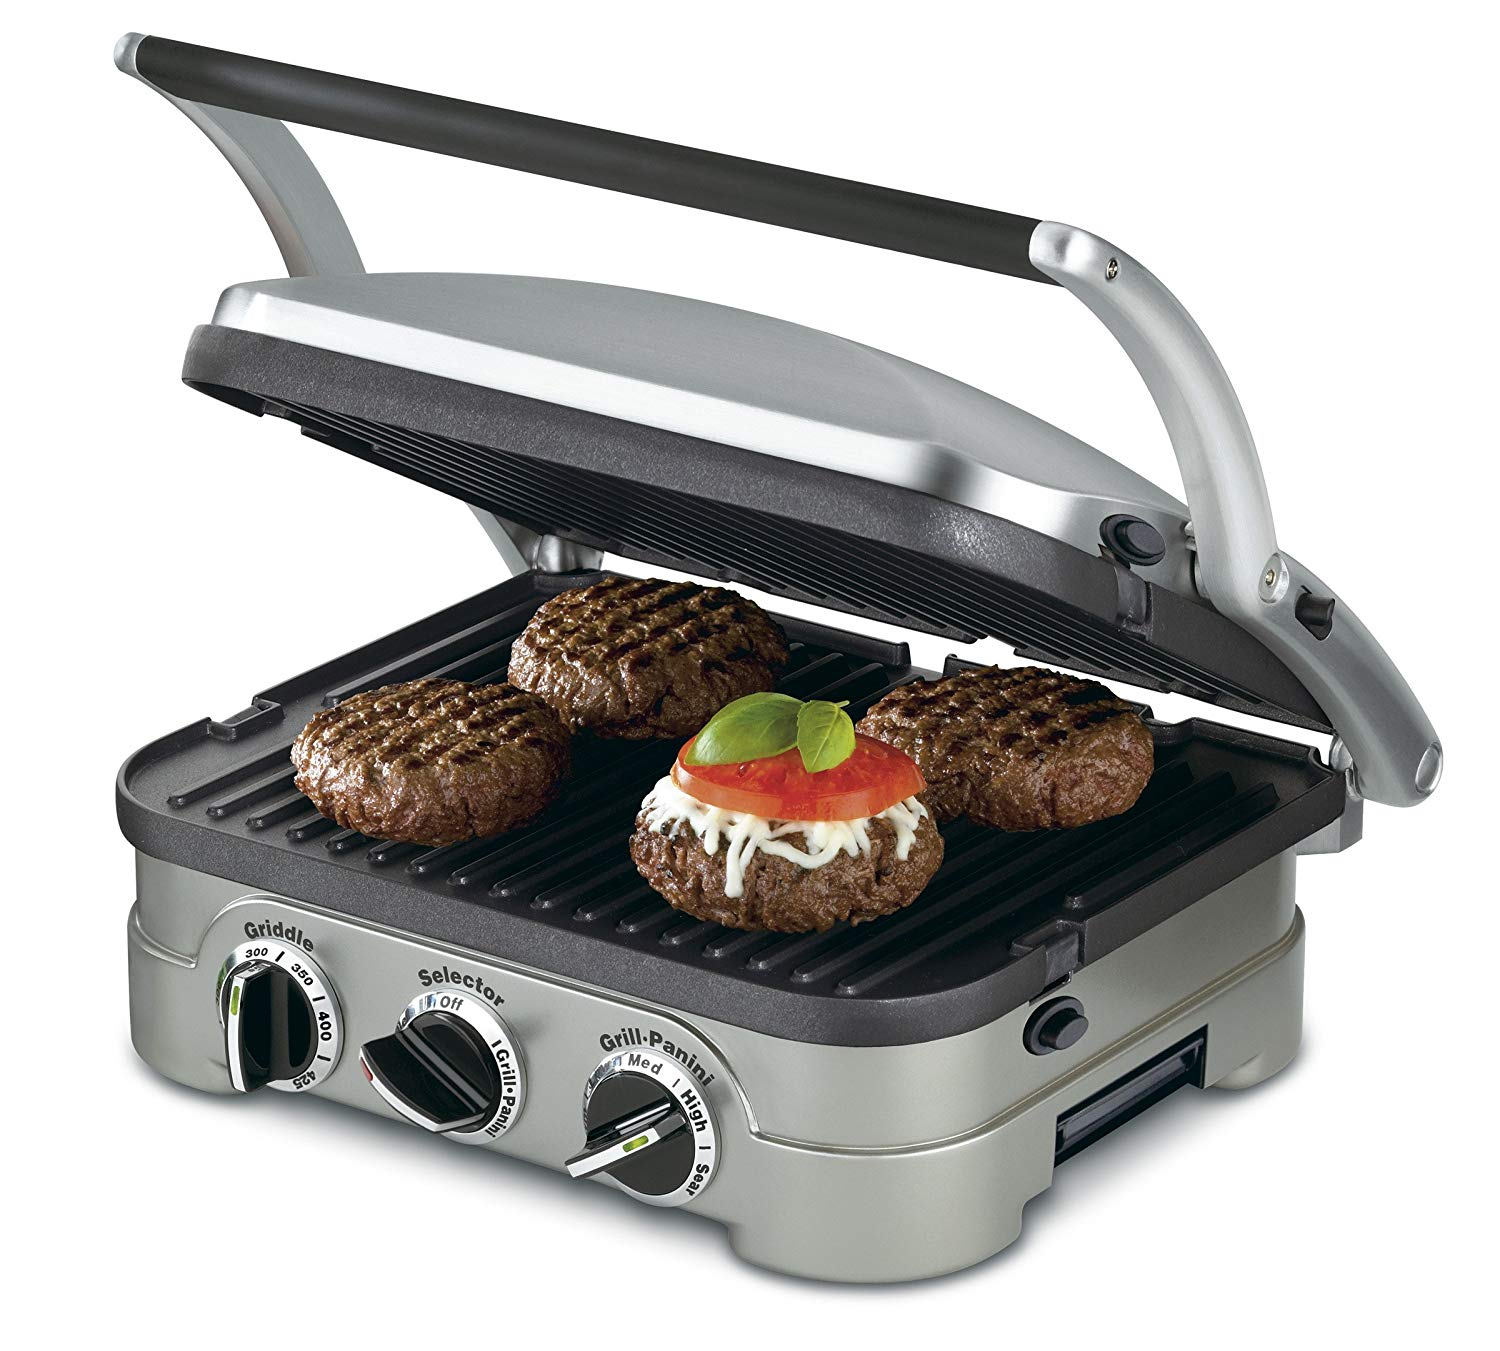 Cuisinart 5-in-1 Griddler Only $49.99 (Was $74.48) + Free Shipping